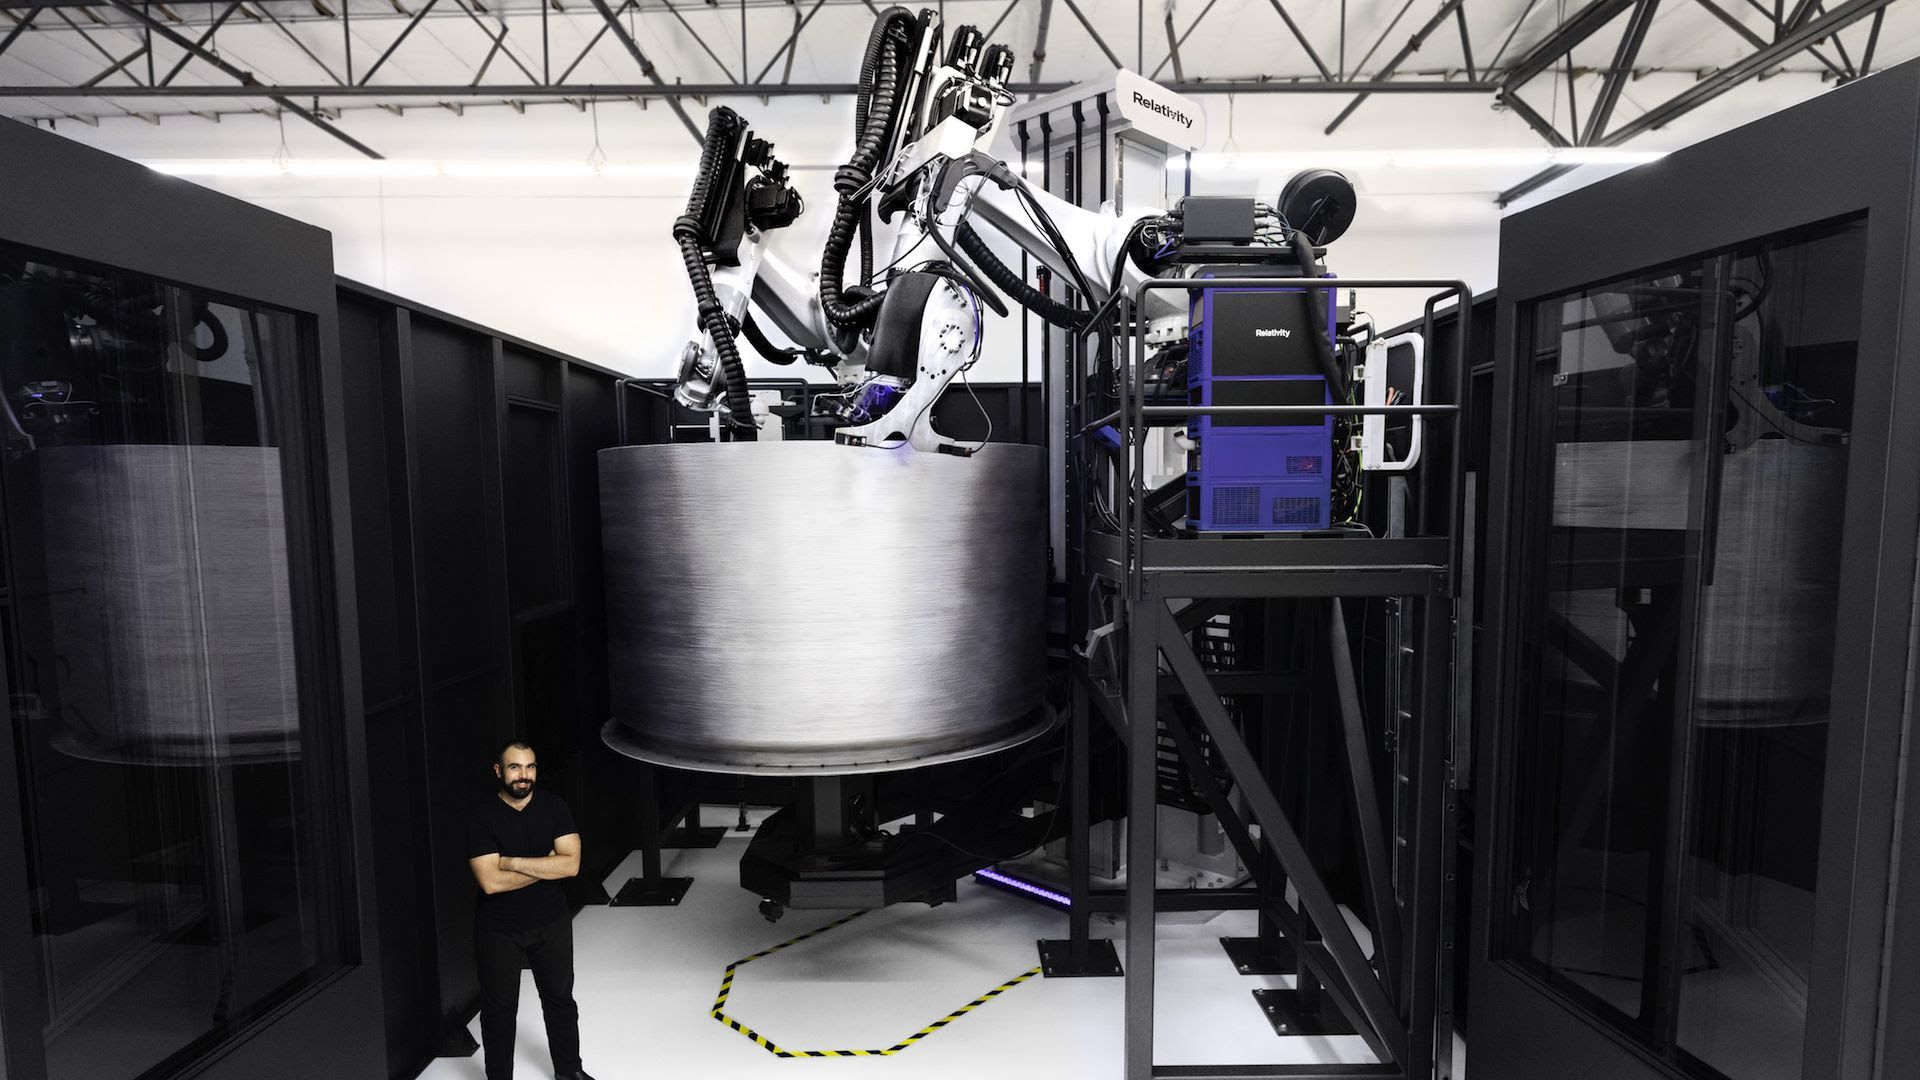 A man stands in front of a metal space device around twice his size.